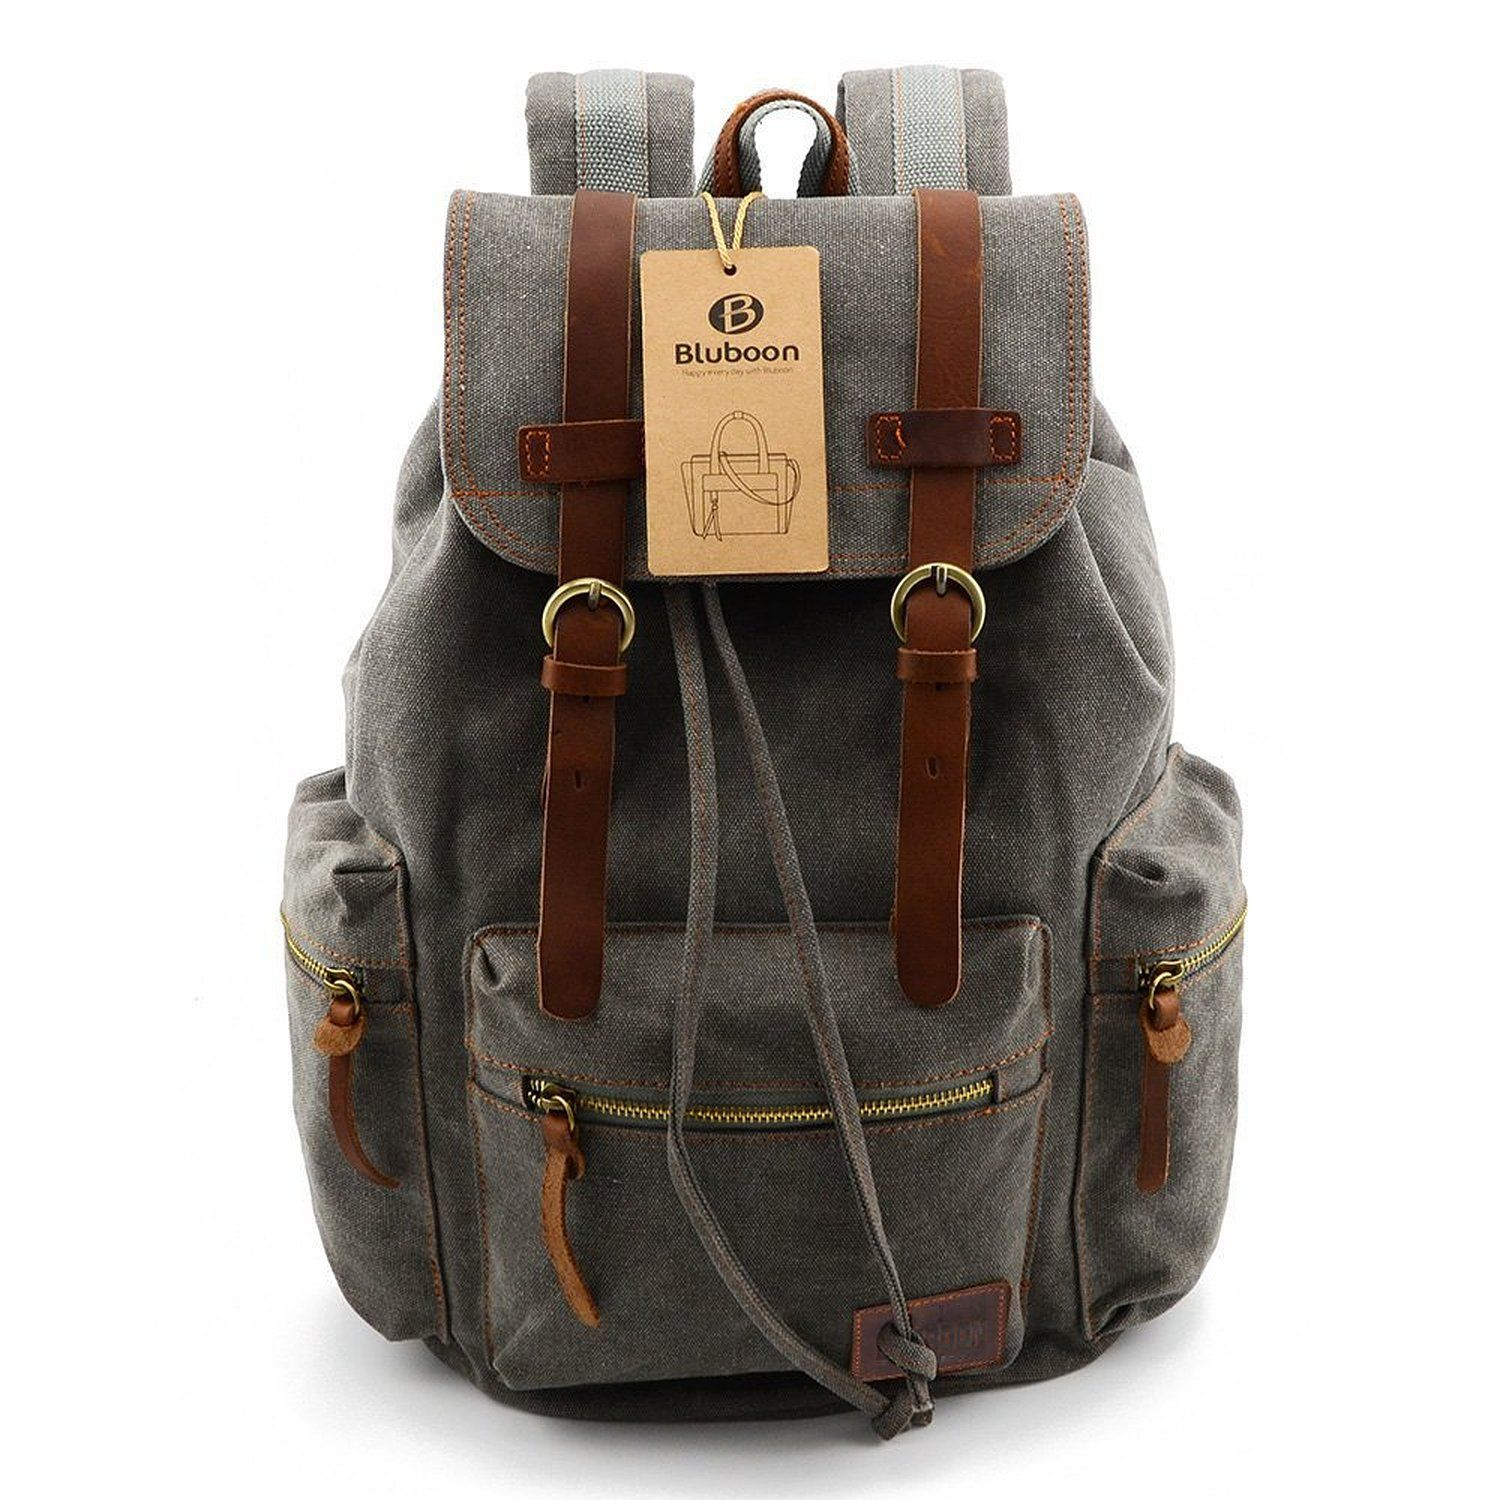 443799e2bbe0 Canvas Vintage Backpack Men Rucksack Bookbag Leather